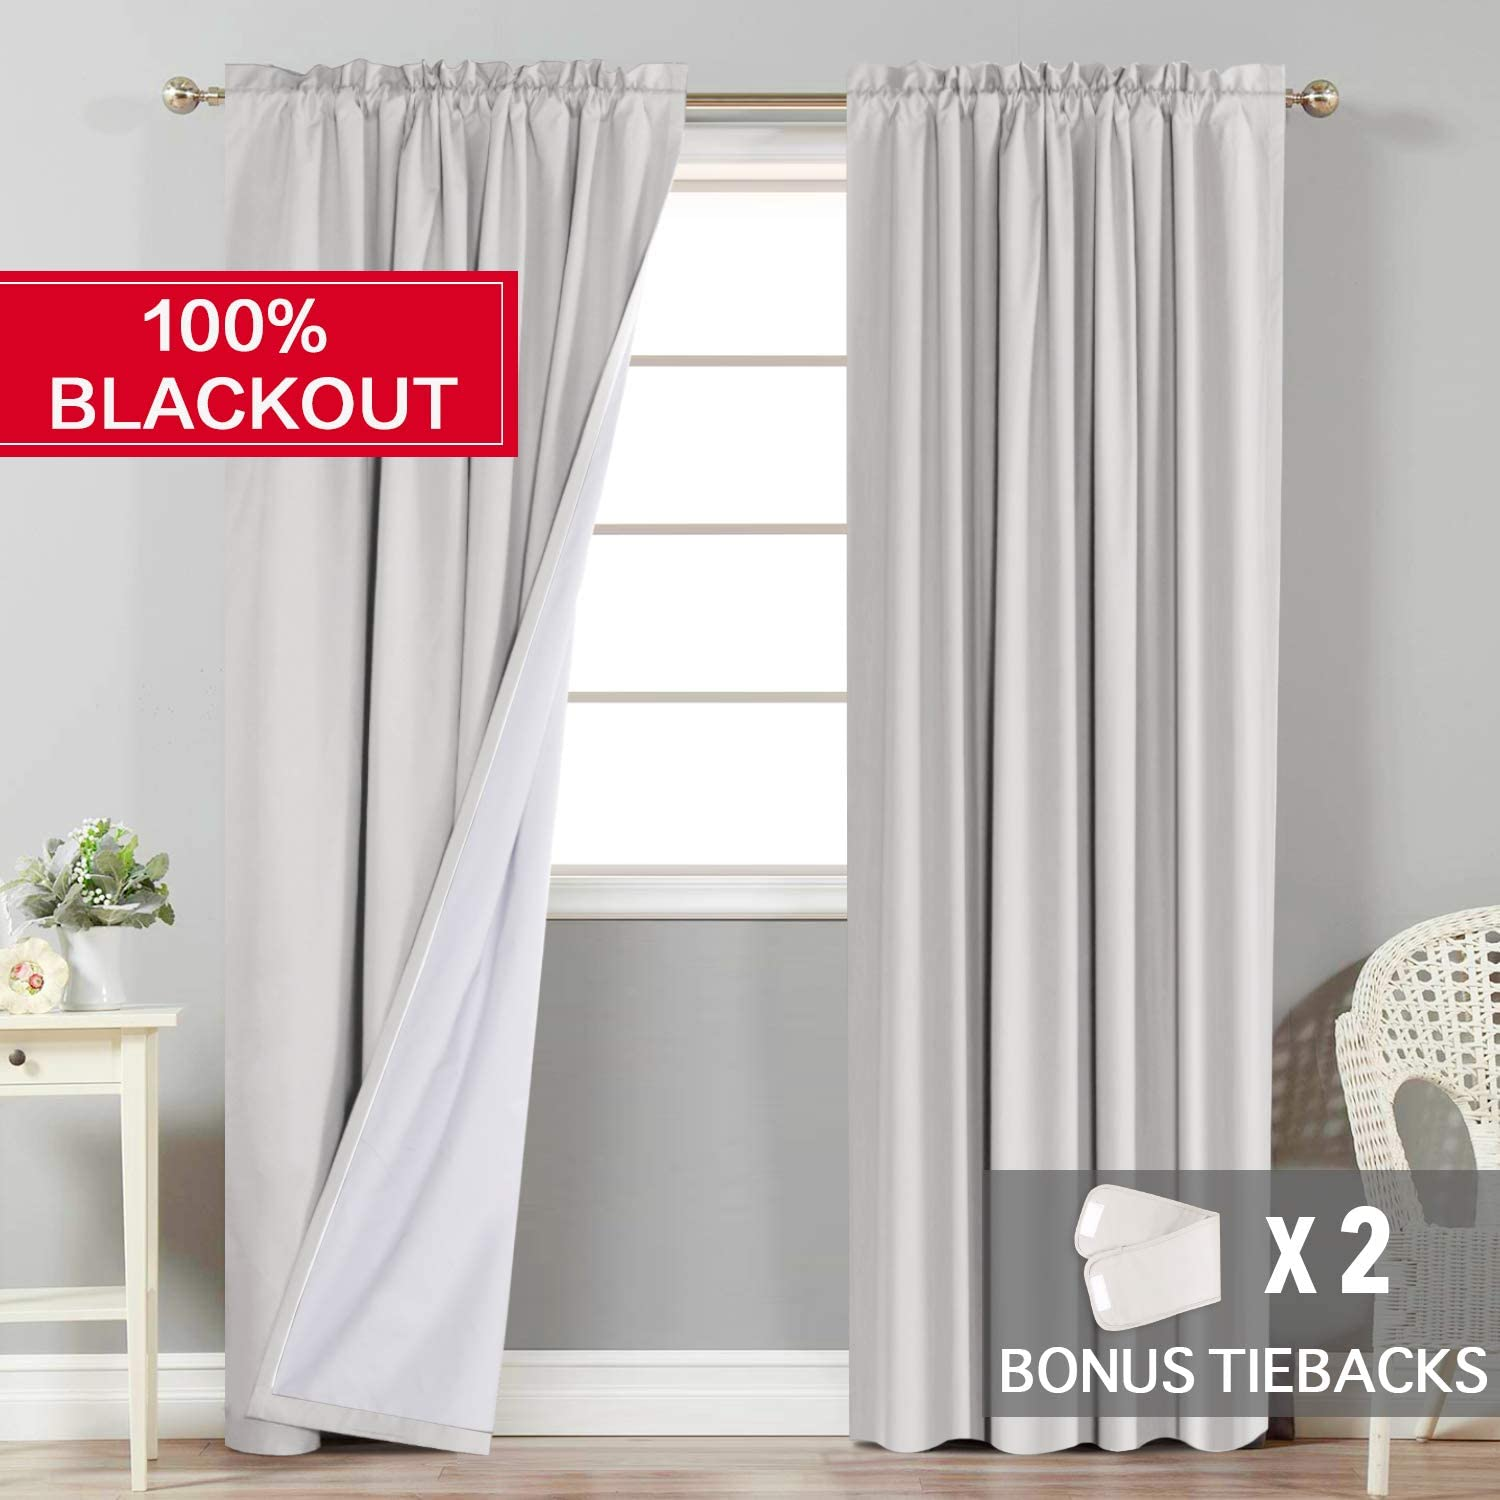 Flamingo P Full Blackout Waterproof Primitive Curtains, Decorative Thermal Insulated Window Treatment Drapes with Rod Pocket, 2 Bonus Tie-Backs (1 Pair, Each Panel W52 x L84 inches, Natural)